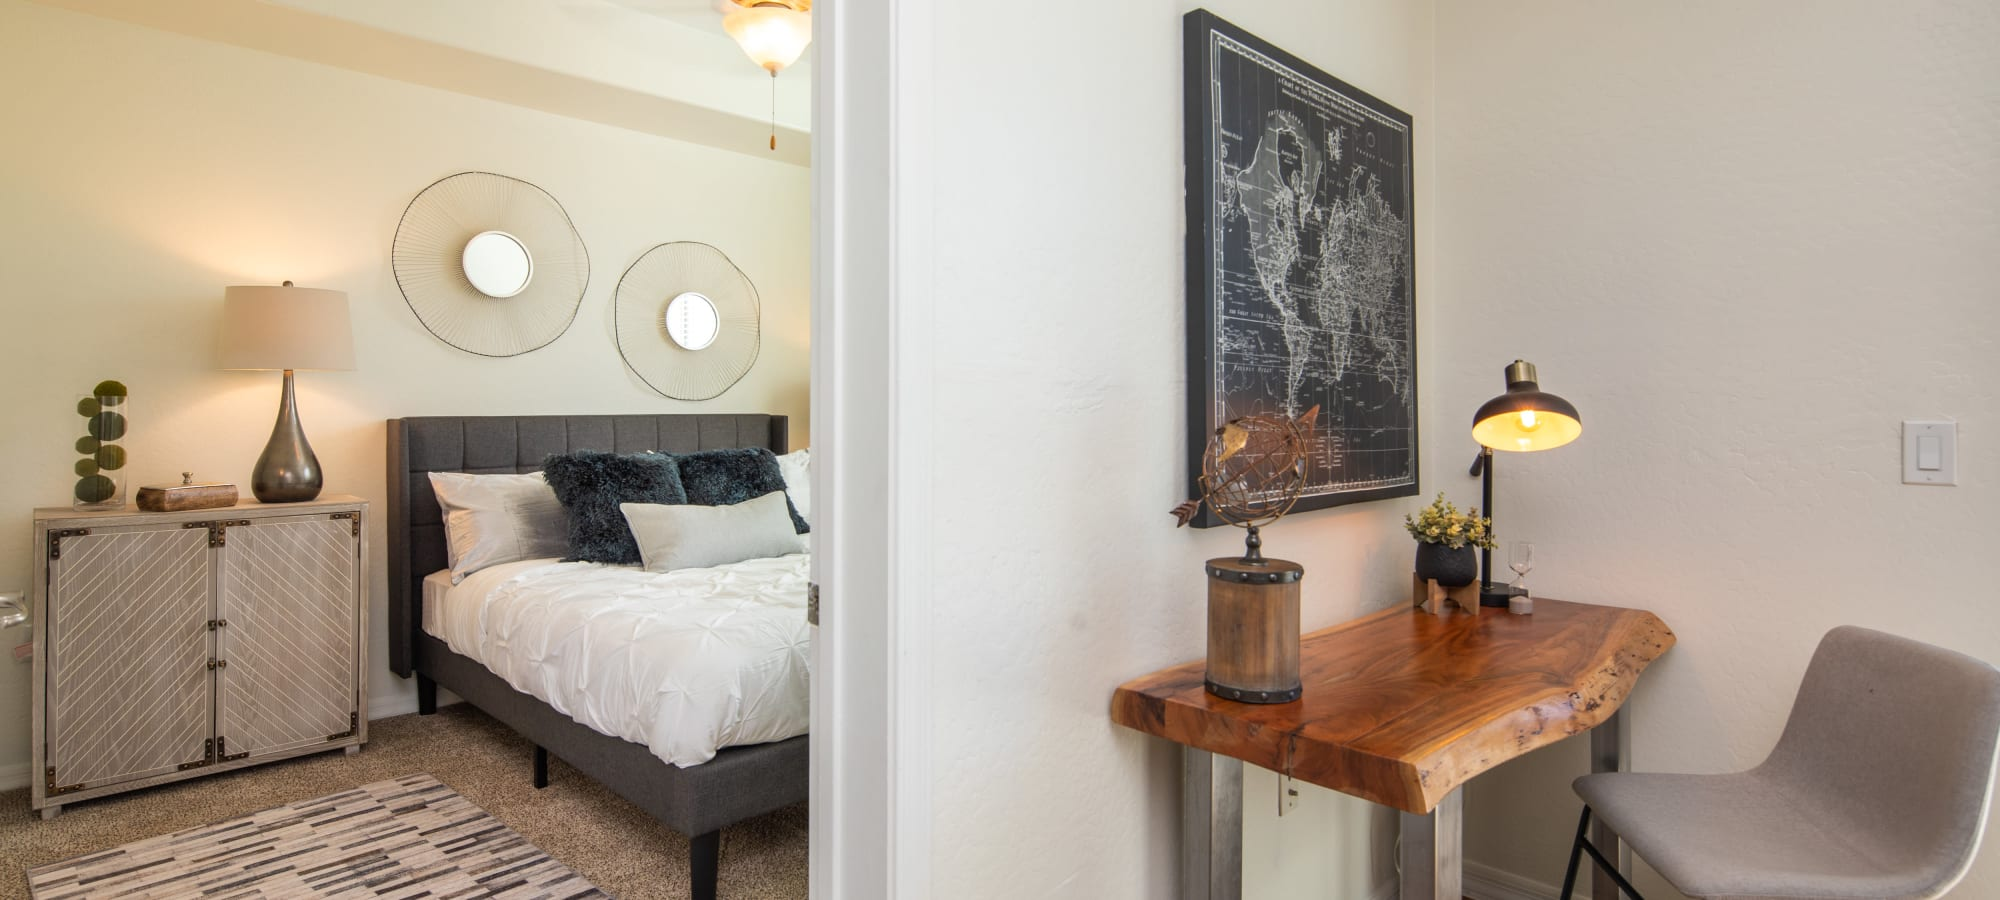 Bedroom and table at The Fleetwood in Tempe, Arizona